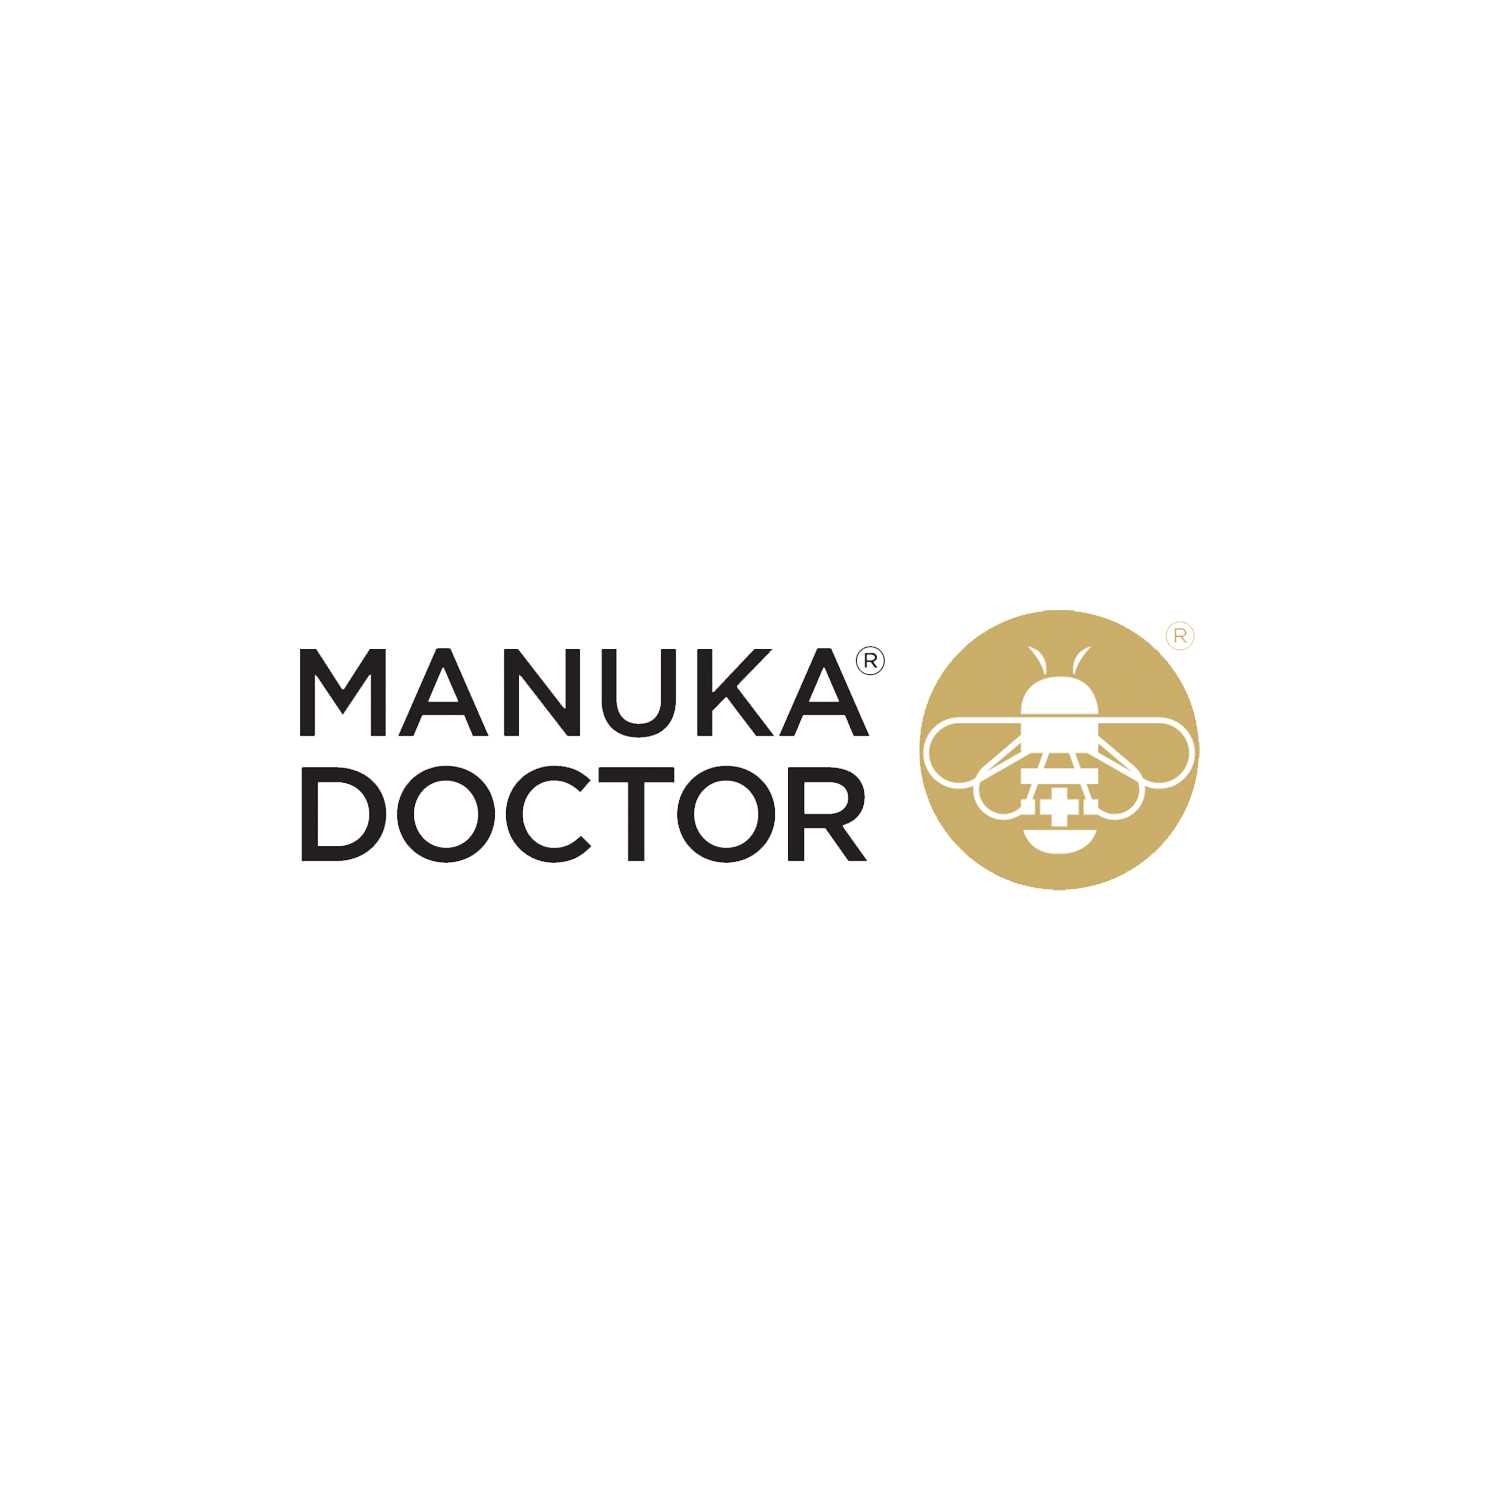 Manuka Doctor Coupons & Promo Codes